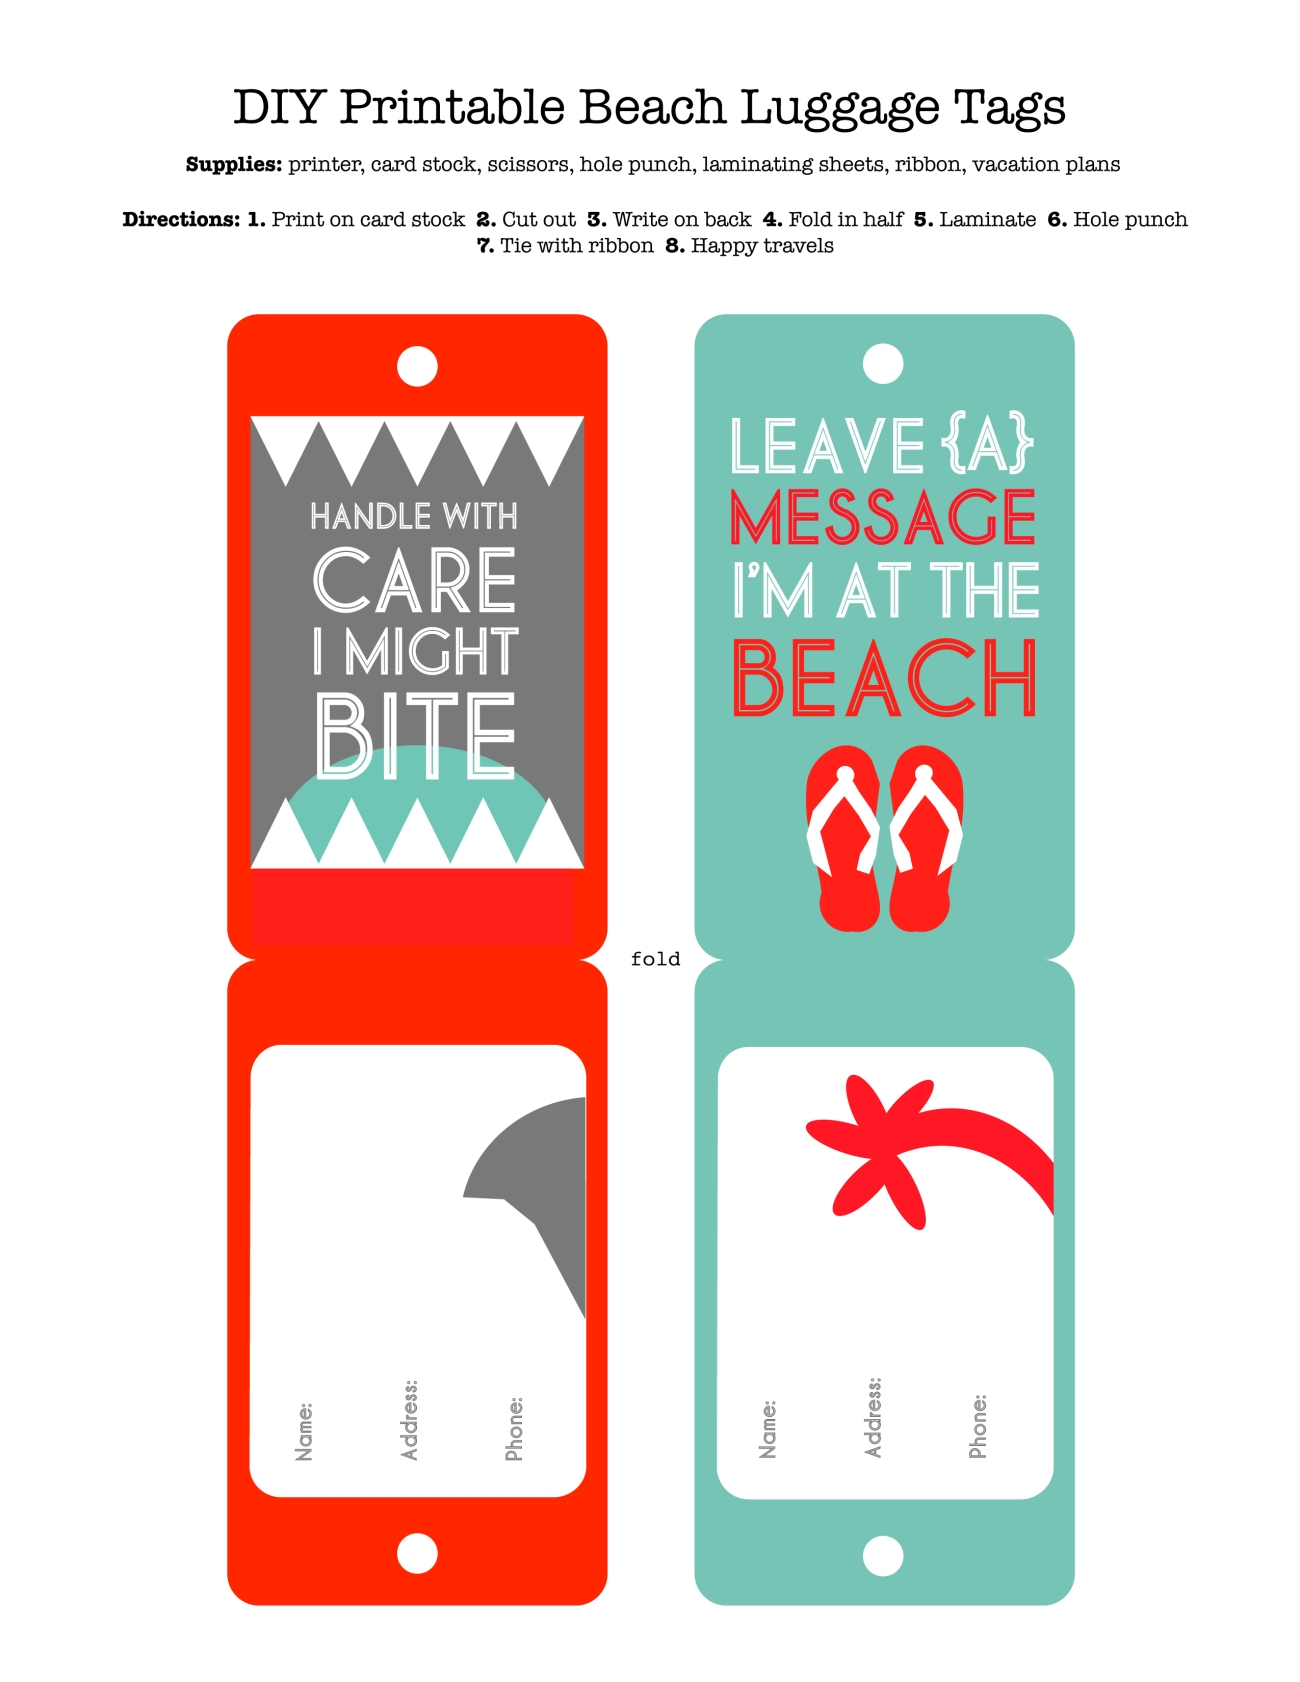 Beach luggage tags redefined mom